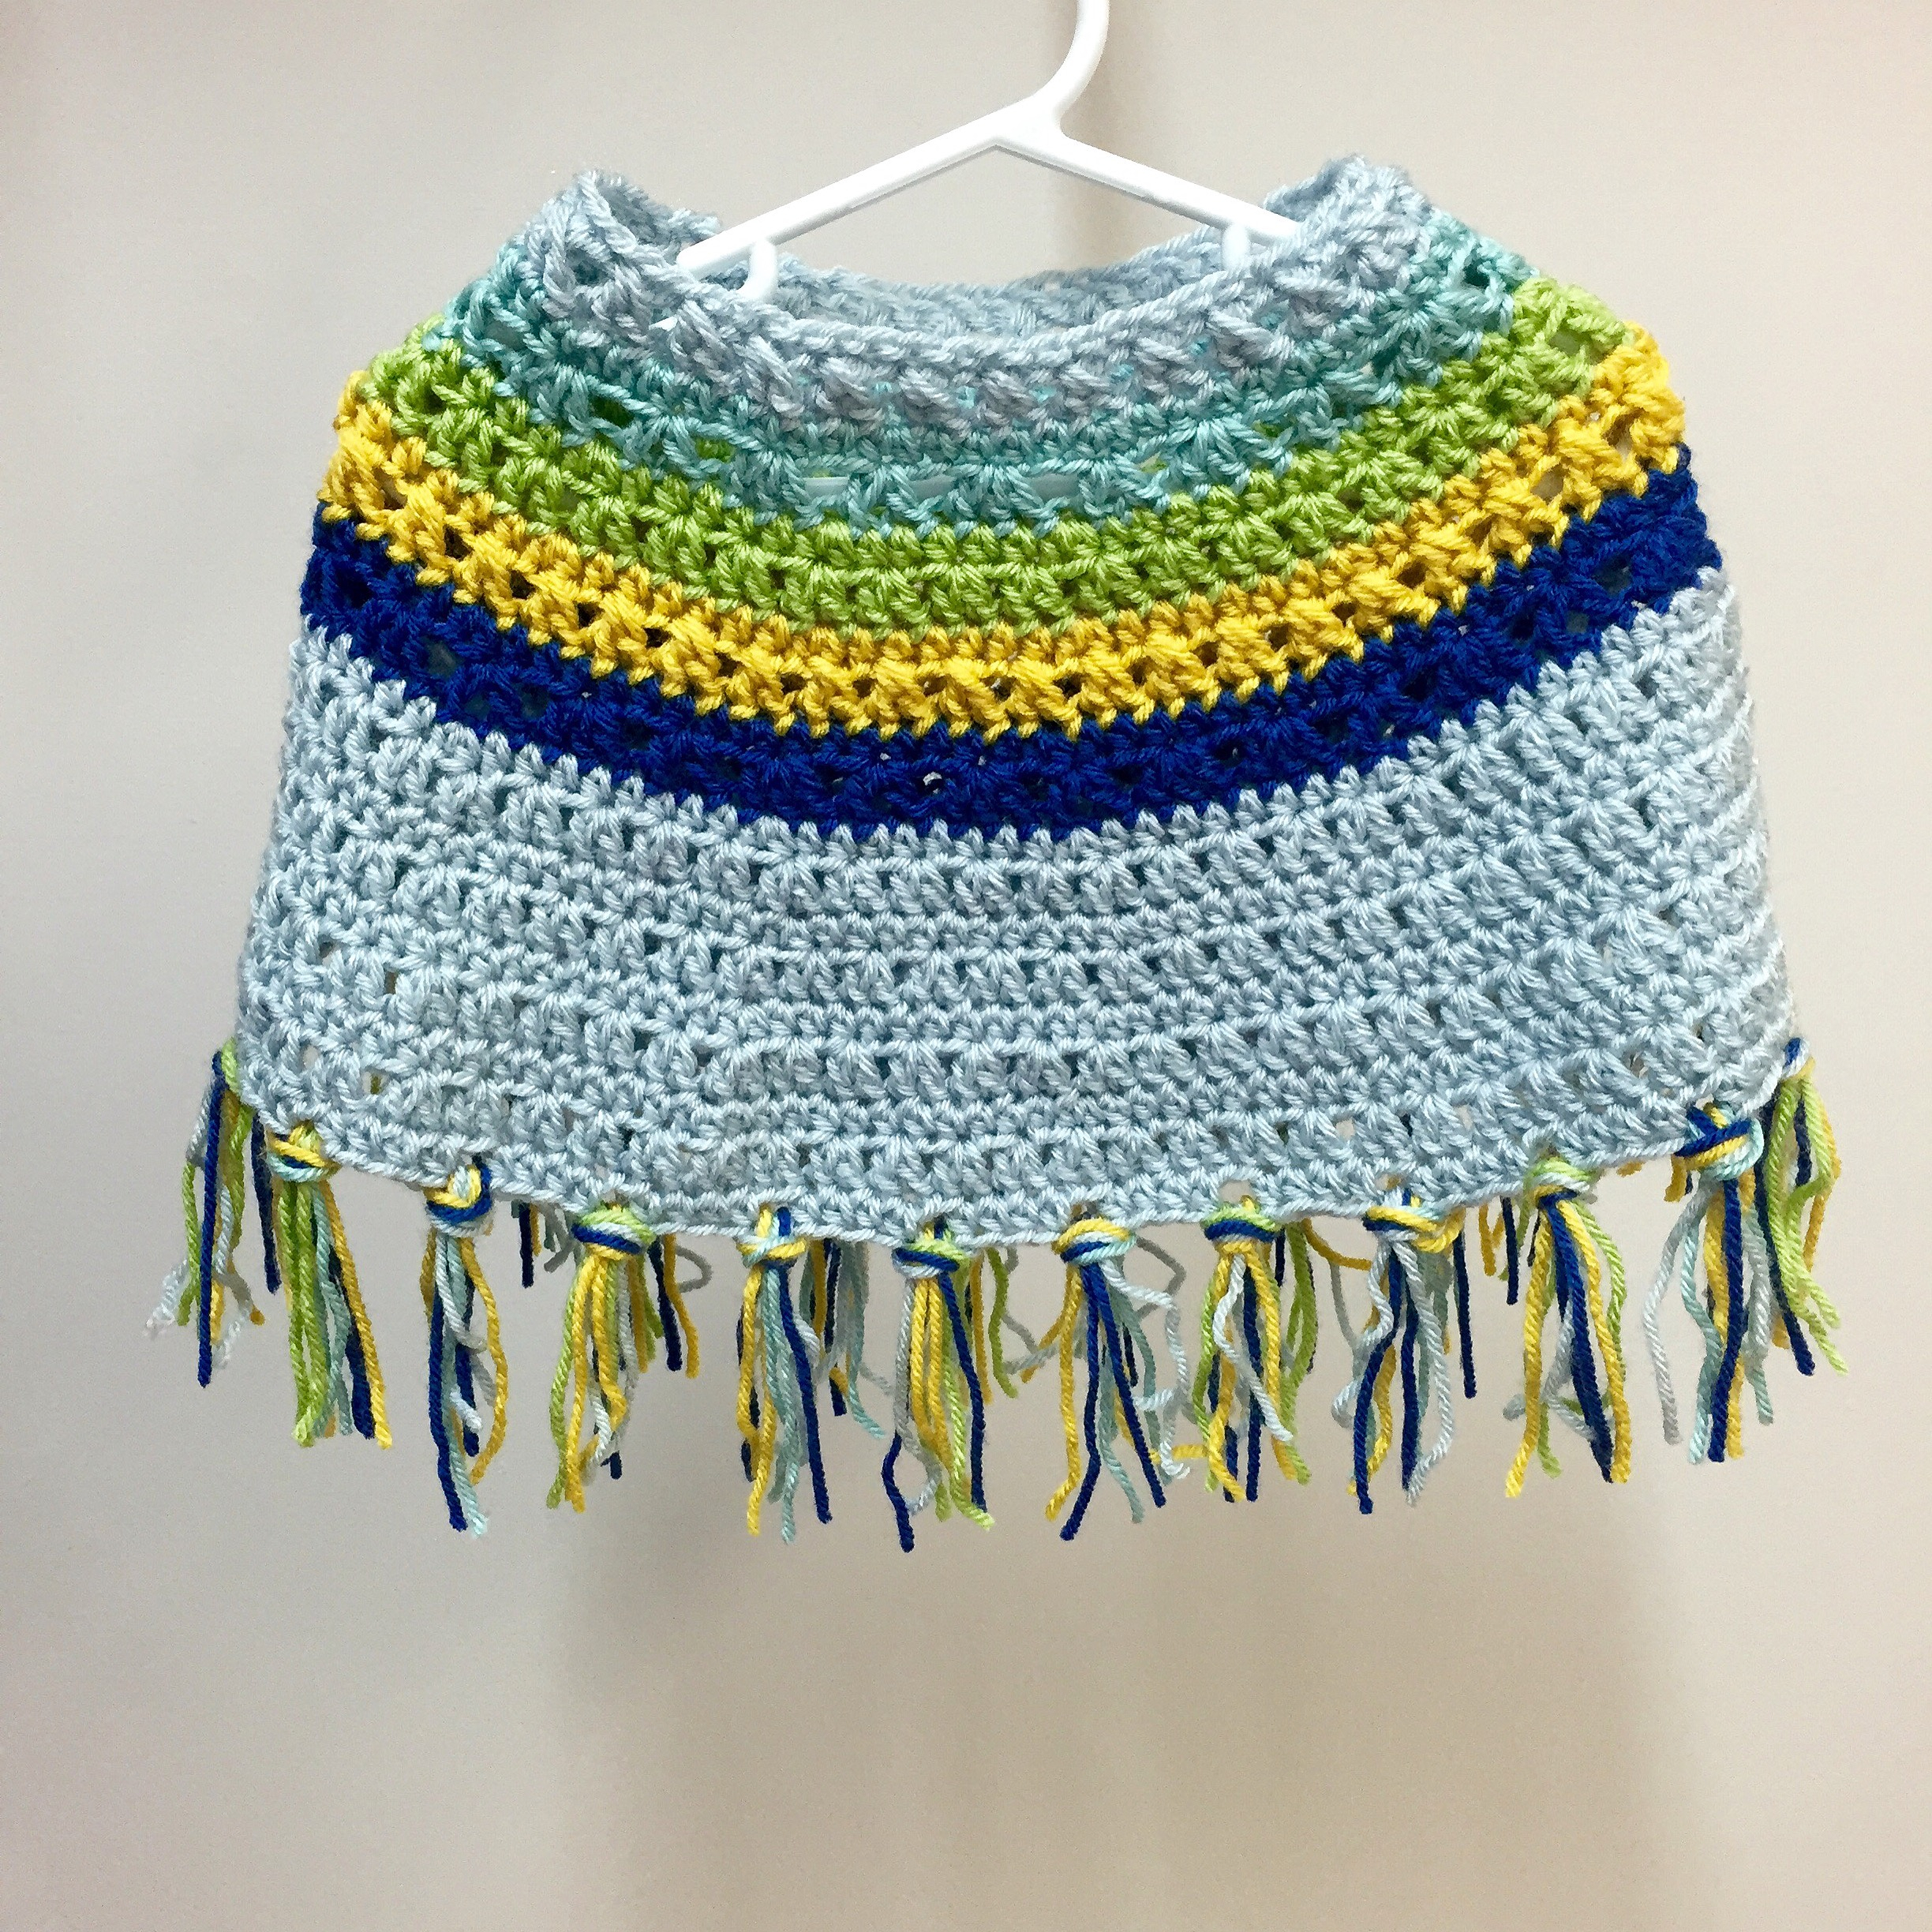 Simple Poncho Crochet Pattern Crochet Pattern Bohemian Stripes Poncho Or Cape For Toddlers